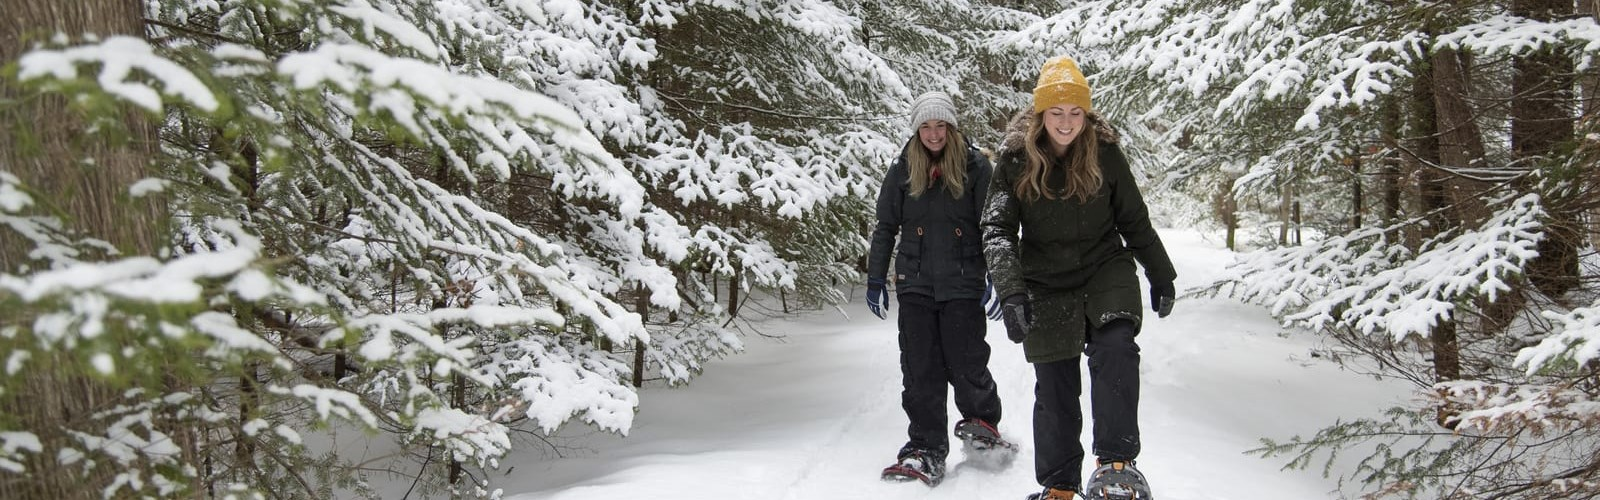 Two women snowshoeing in forest